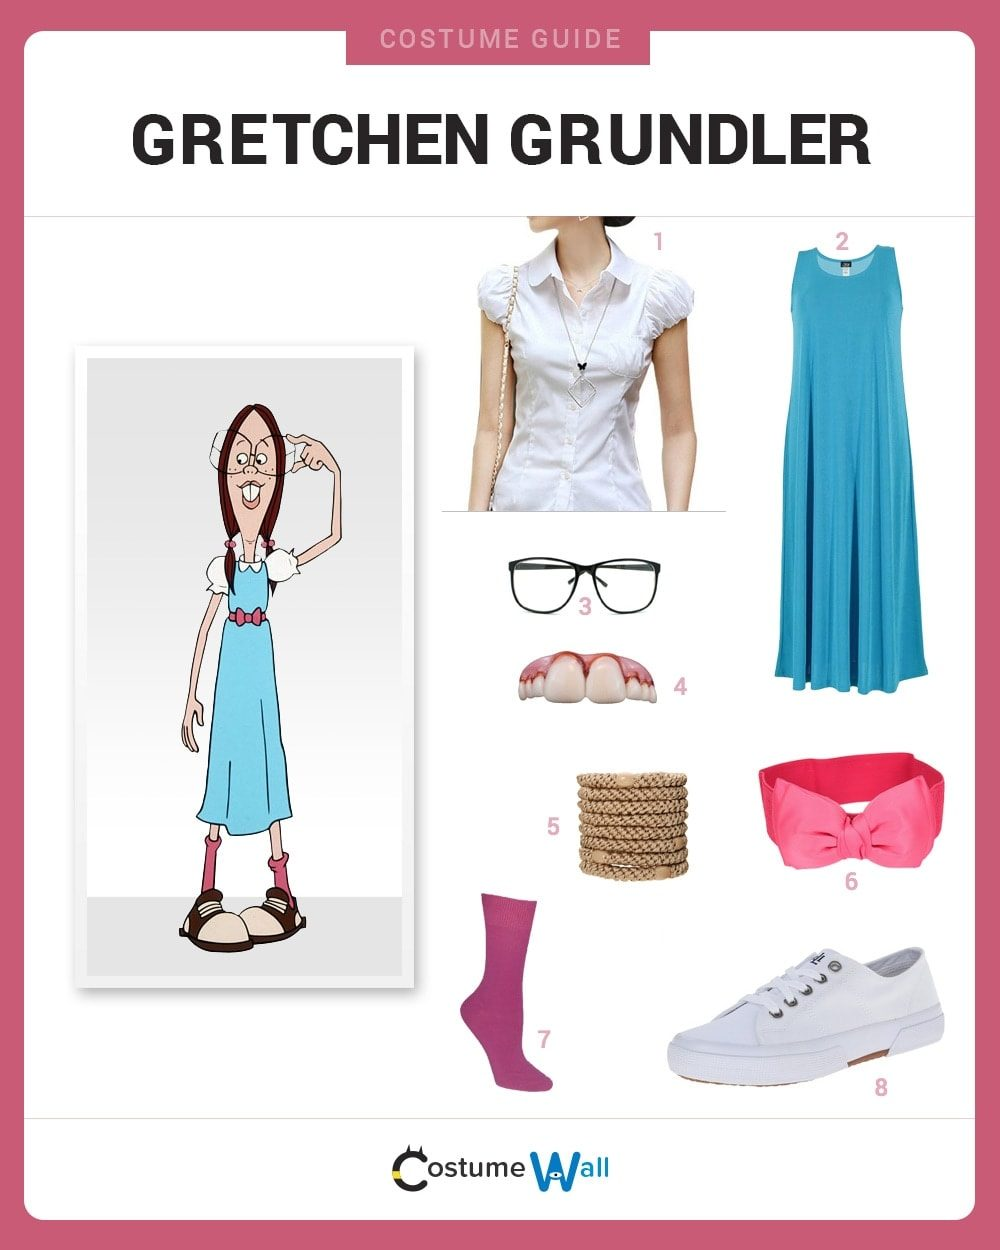 dress like gretchen grundler costume | halloween and cosplay guides